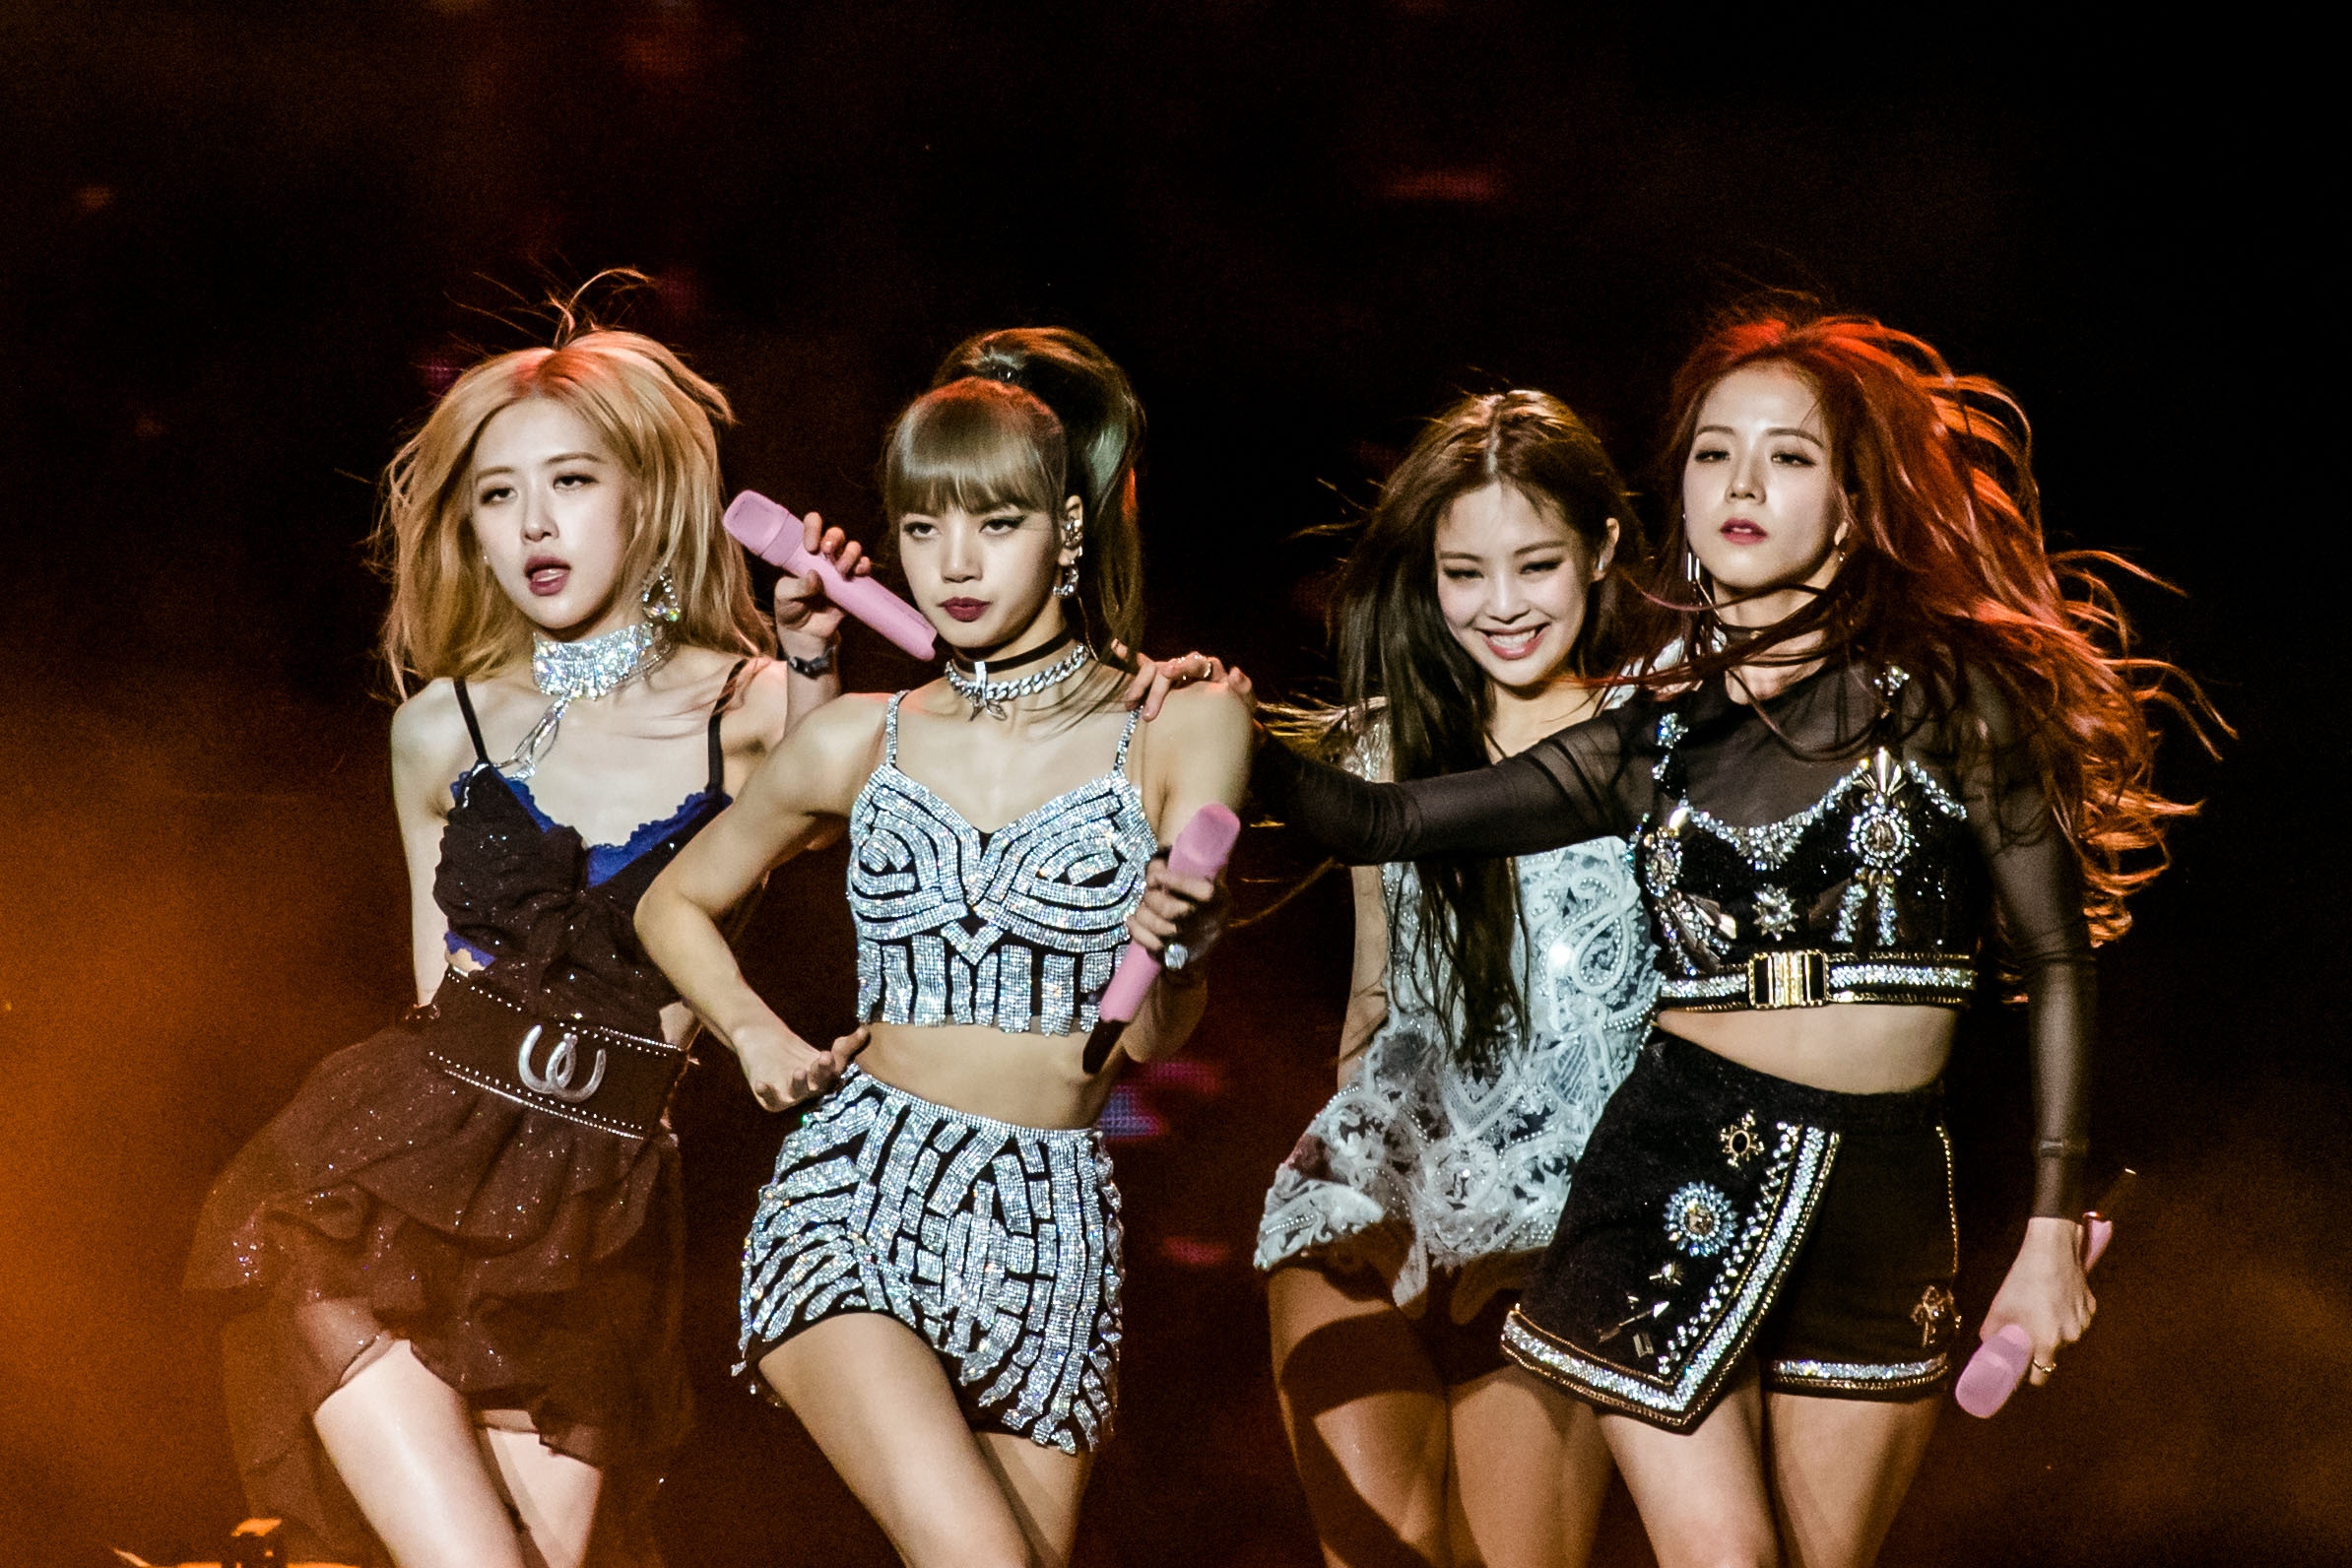 Los 7 performances en vivo más salvajes de BLACKPINK